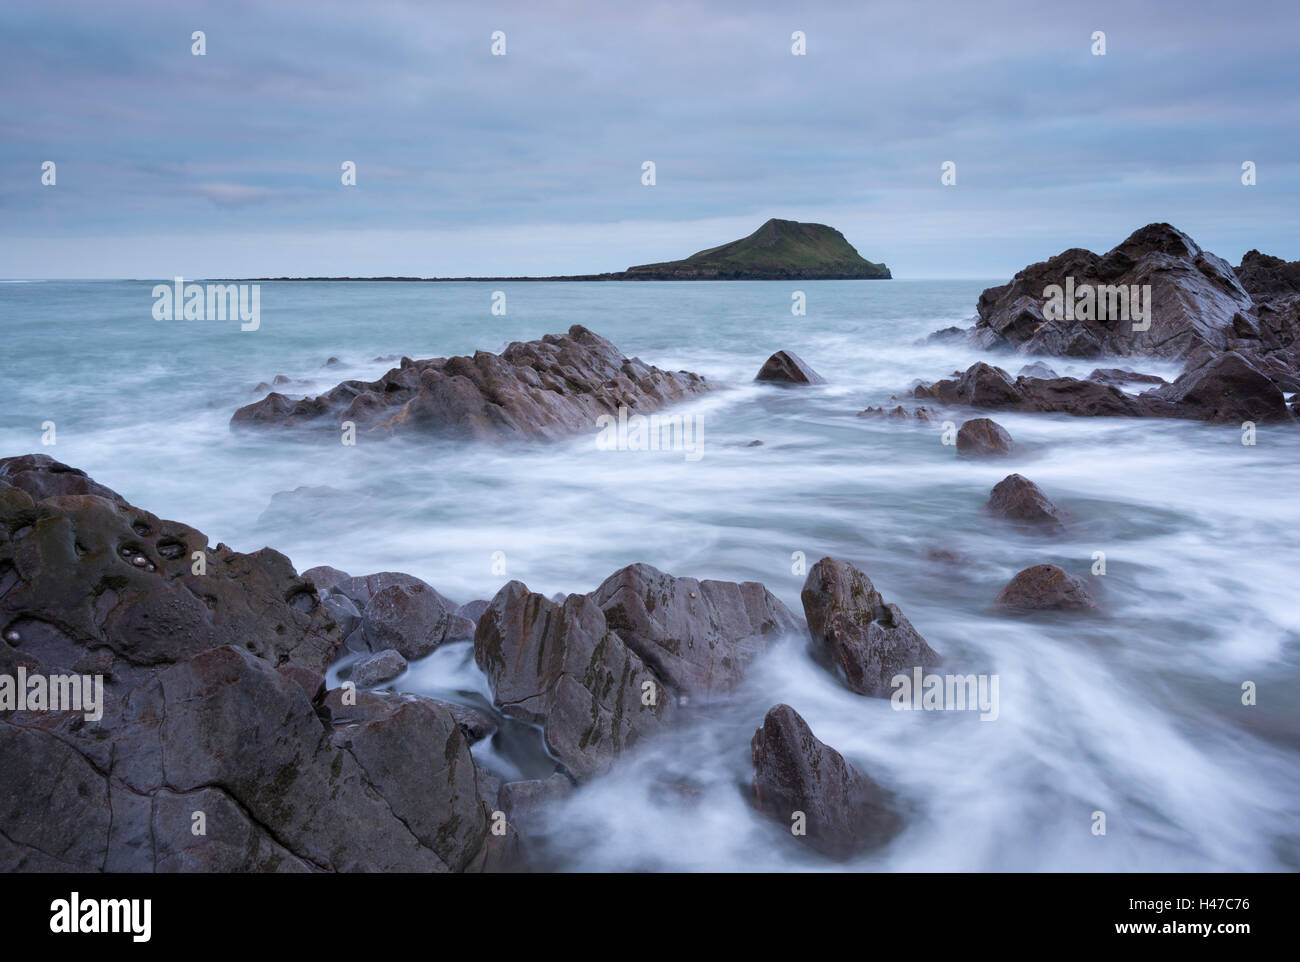 Rocky coast of the Gower looking towards Worm's Head, South Wales, UK. Winter (December) 2014. - Stock Image